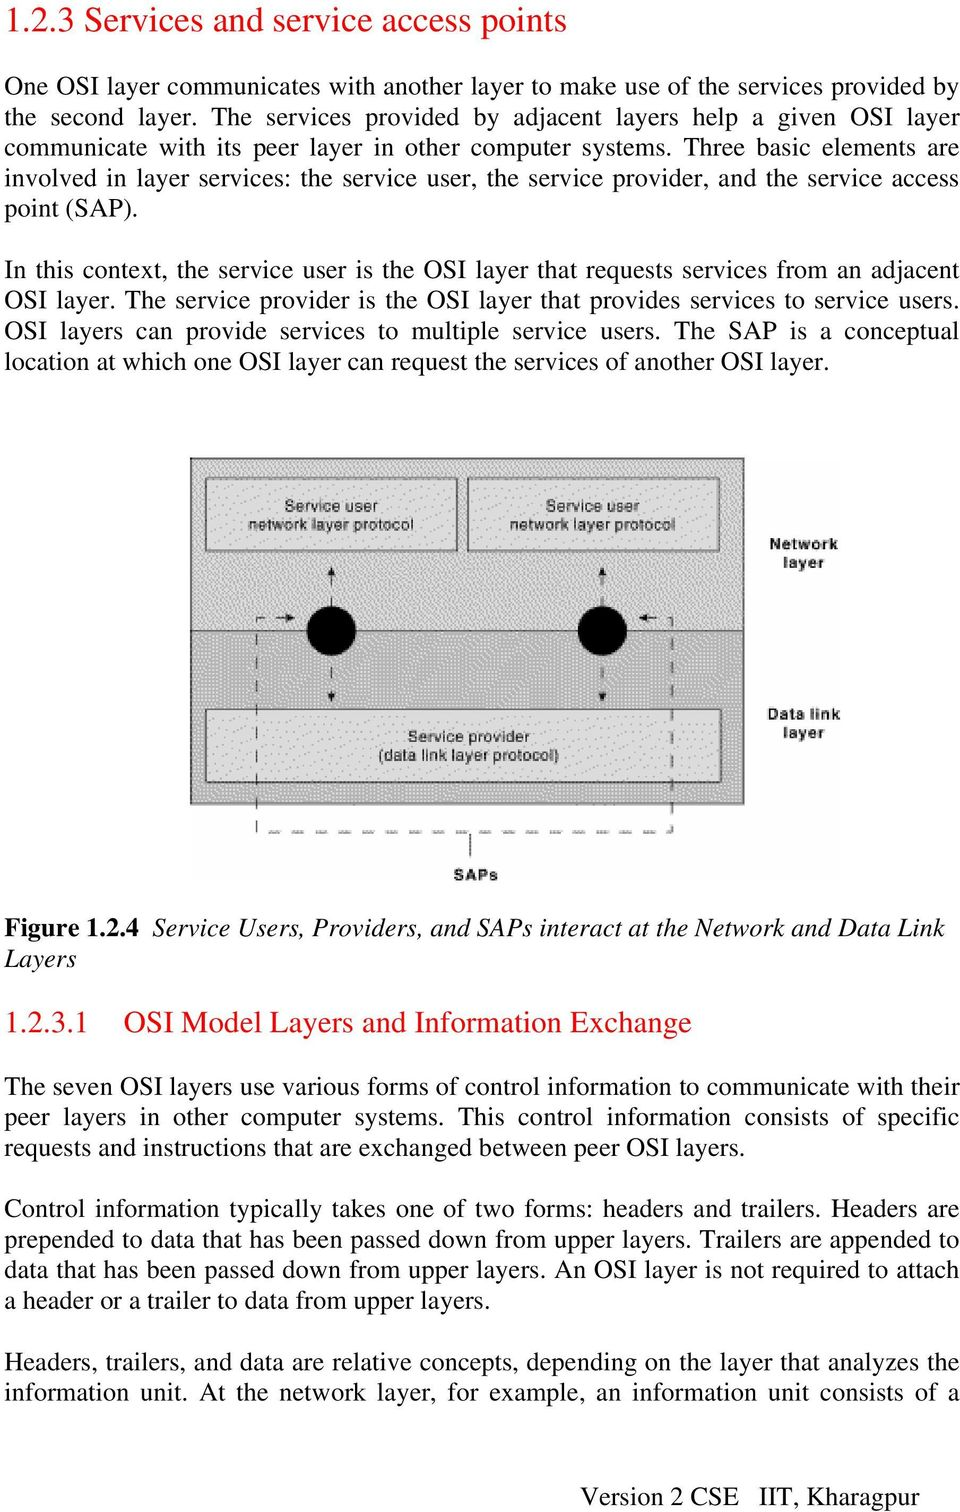 Three basic elements are involved in layer services: the service user, the service provider, and the service access point (SAP).